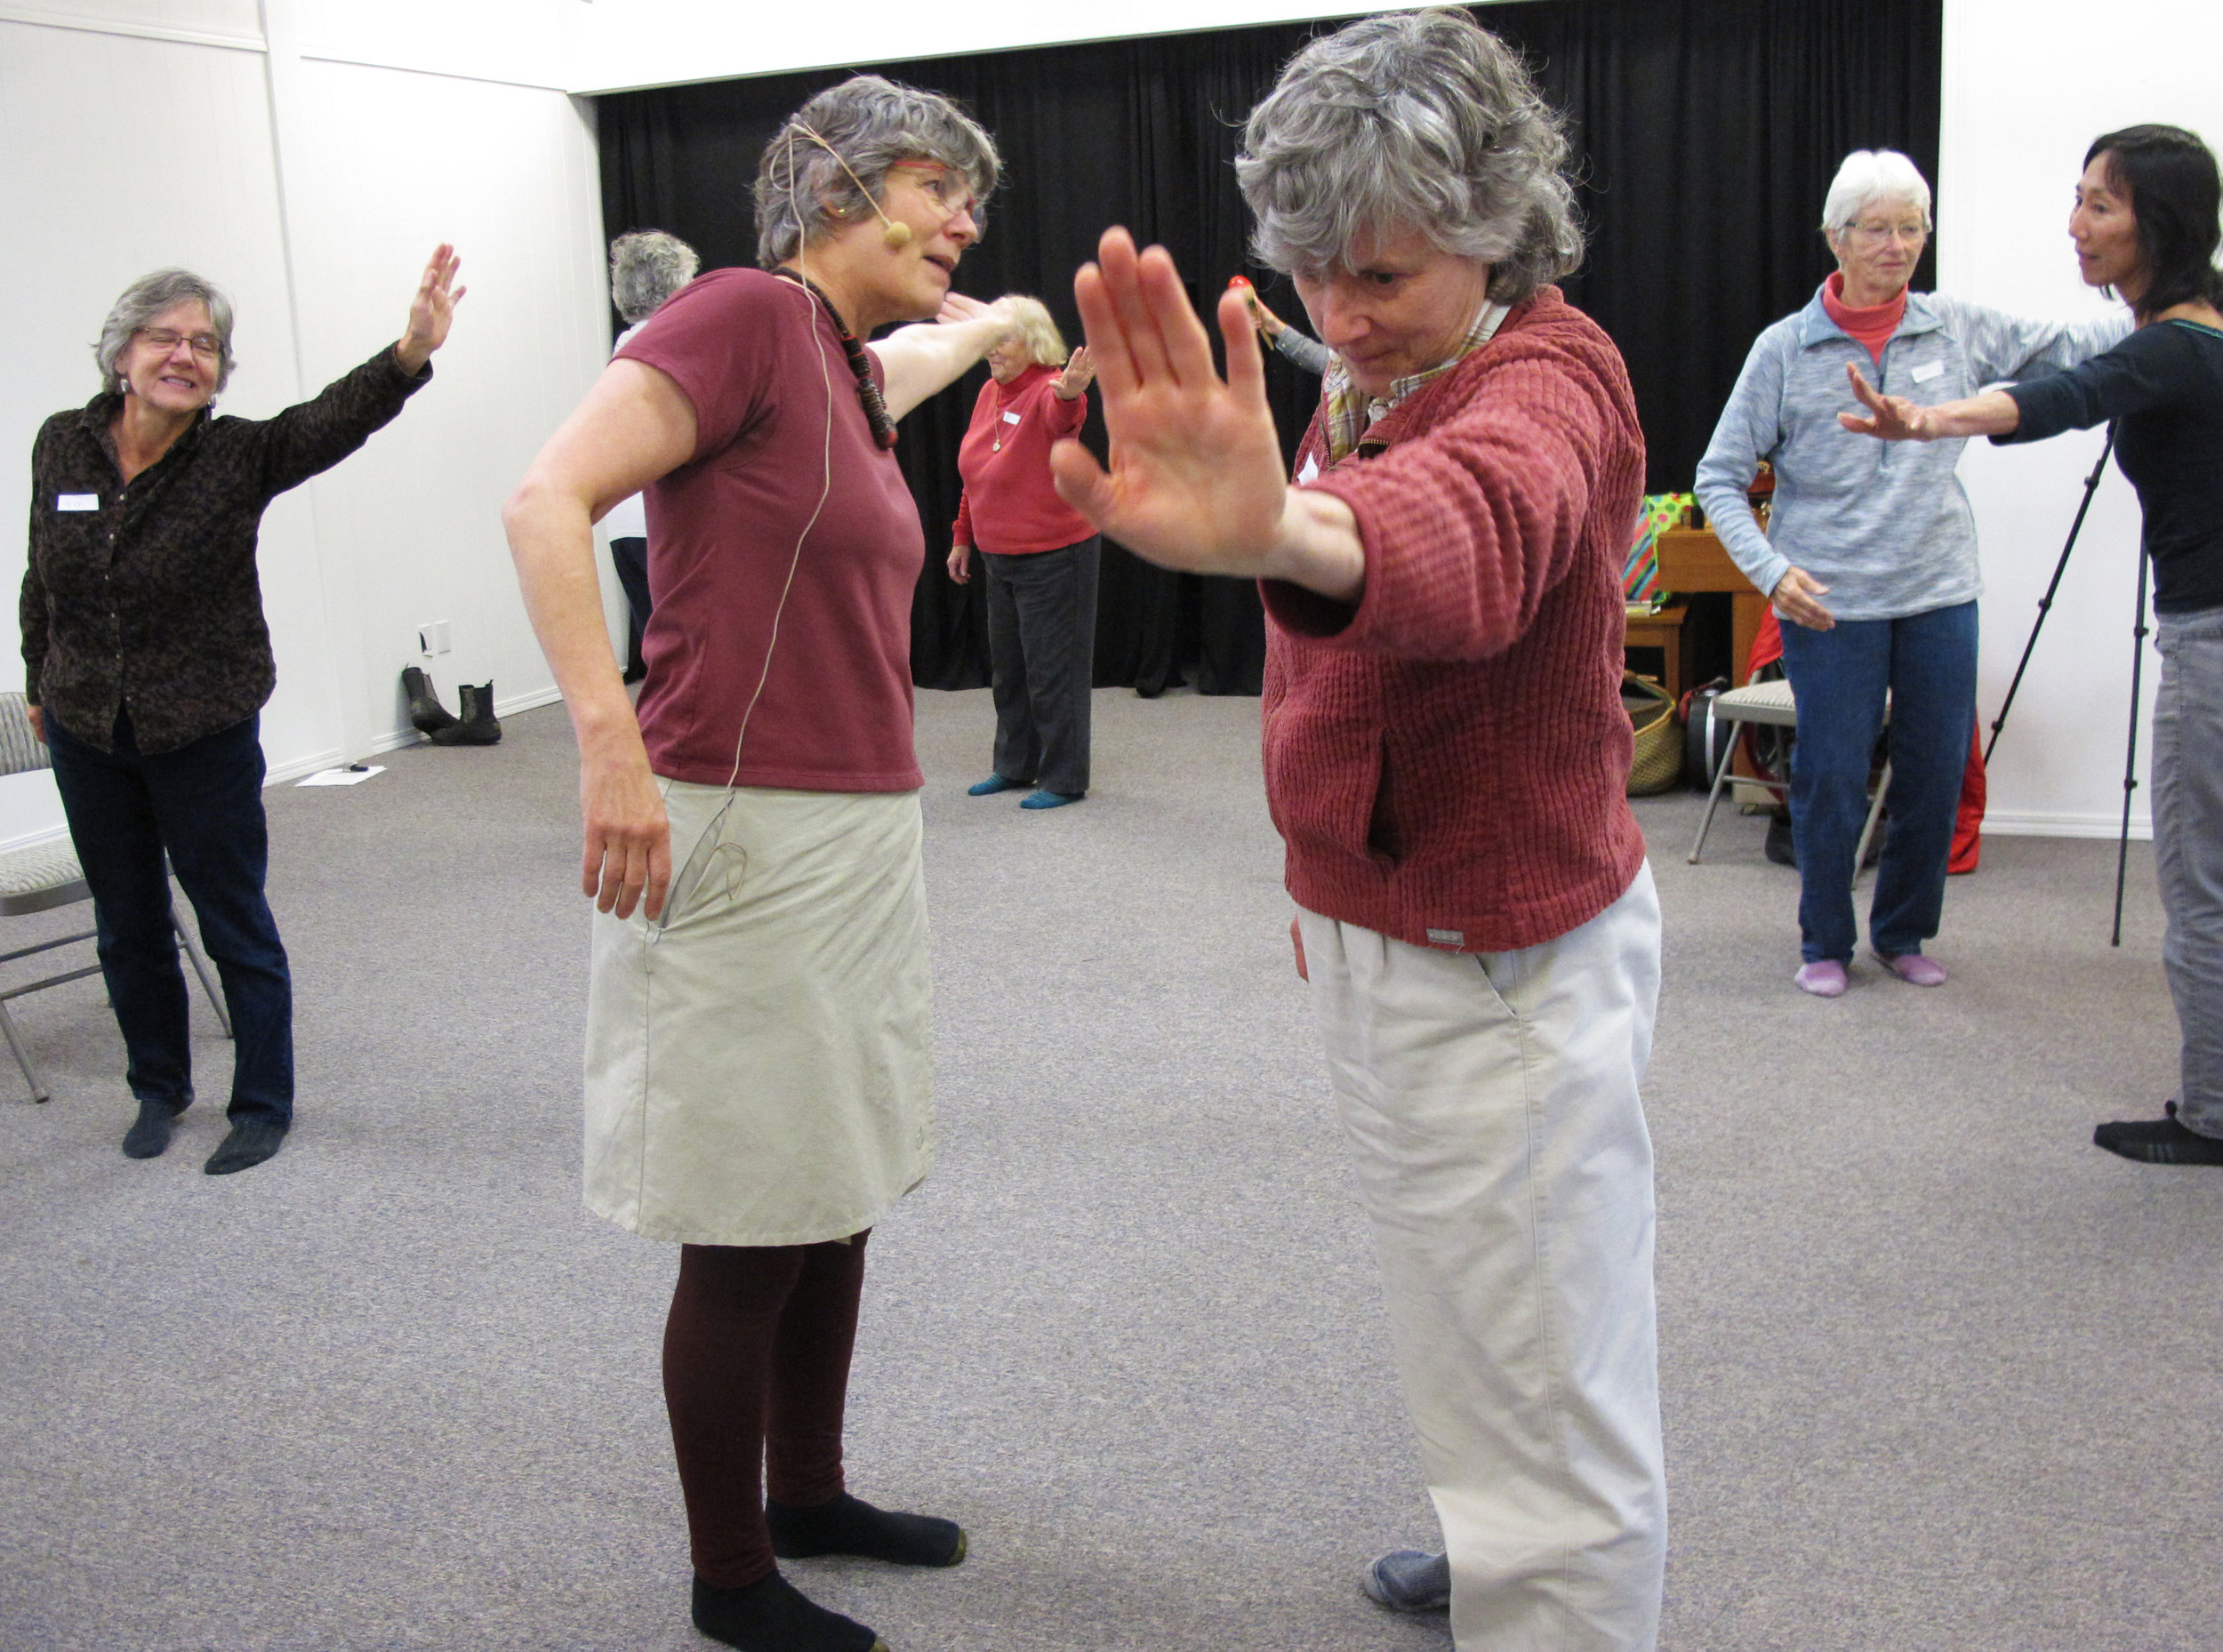 Instructors Dotti Harness-Foster and Cathy Stingley demonstrating movements. Thank you Christina Whitney for the photos.